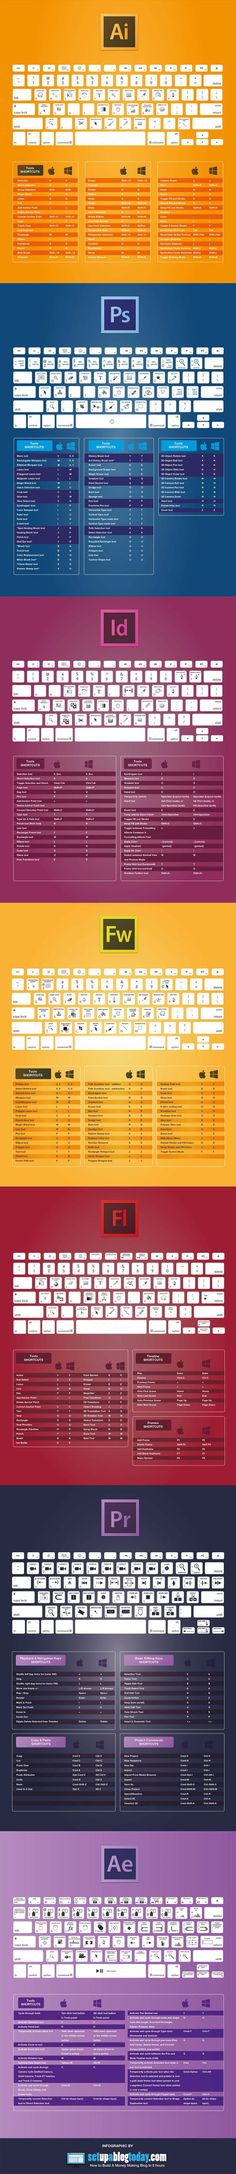 Keyboard shortcuts are the ticket to working faster in many programs. This cheat sheet will help you work more efficiently in Adobe Creative Cloud apps, including Photoshop, Illustrator, InDesign, and Premier Pro. Photoshop tips. Visual Design, Graphisches Design, Graphic Design Tips, Tool Design, Graphic Design Inspiration, Print Design, Actions Photoshop, Photoshop Tutorial, Lightroom